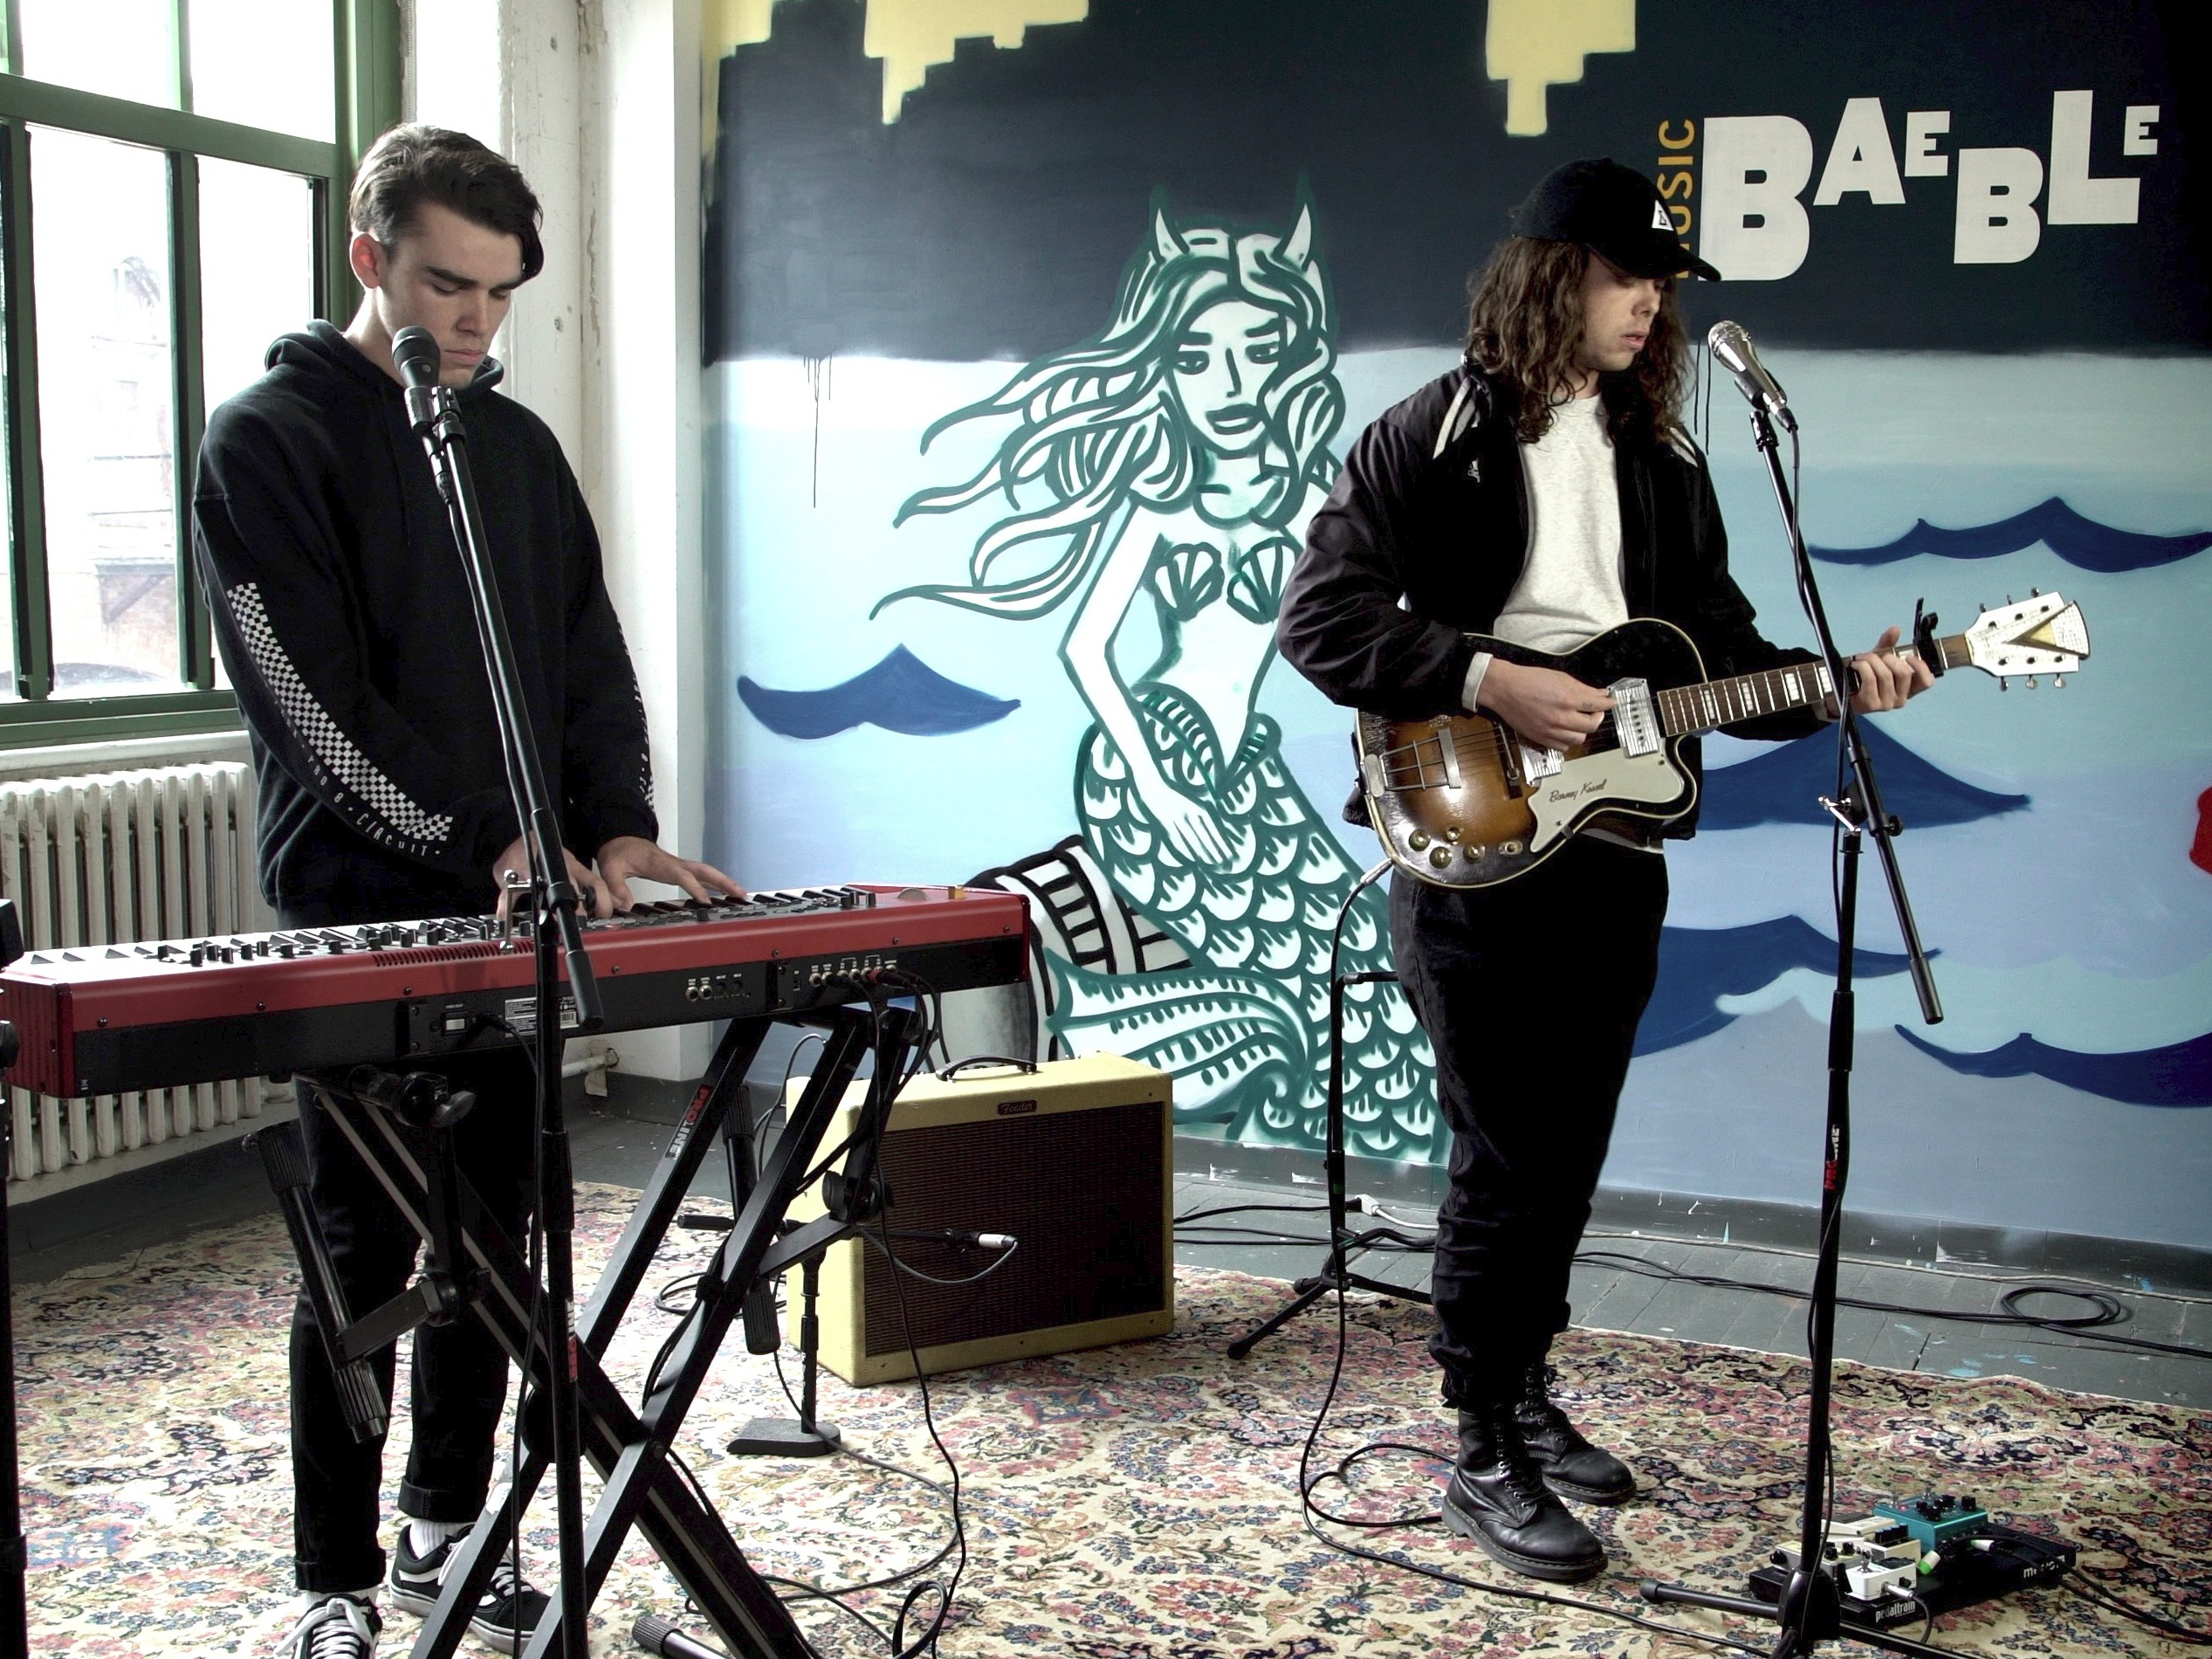 NOW PLAYING: Vancouver Sleep Clinic's Soothing Session at Baeble HQ